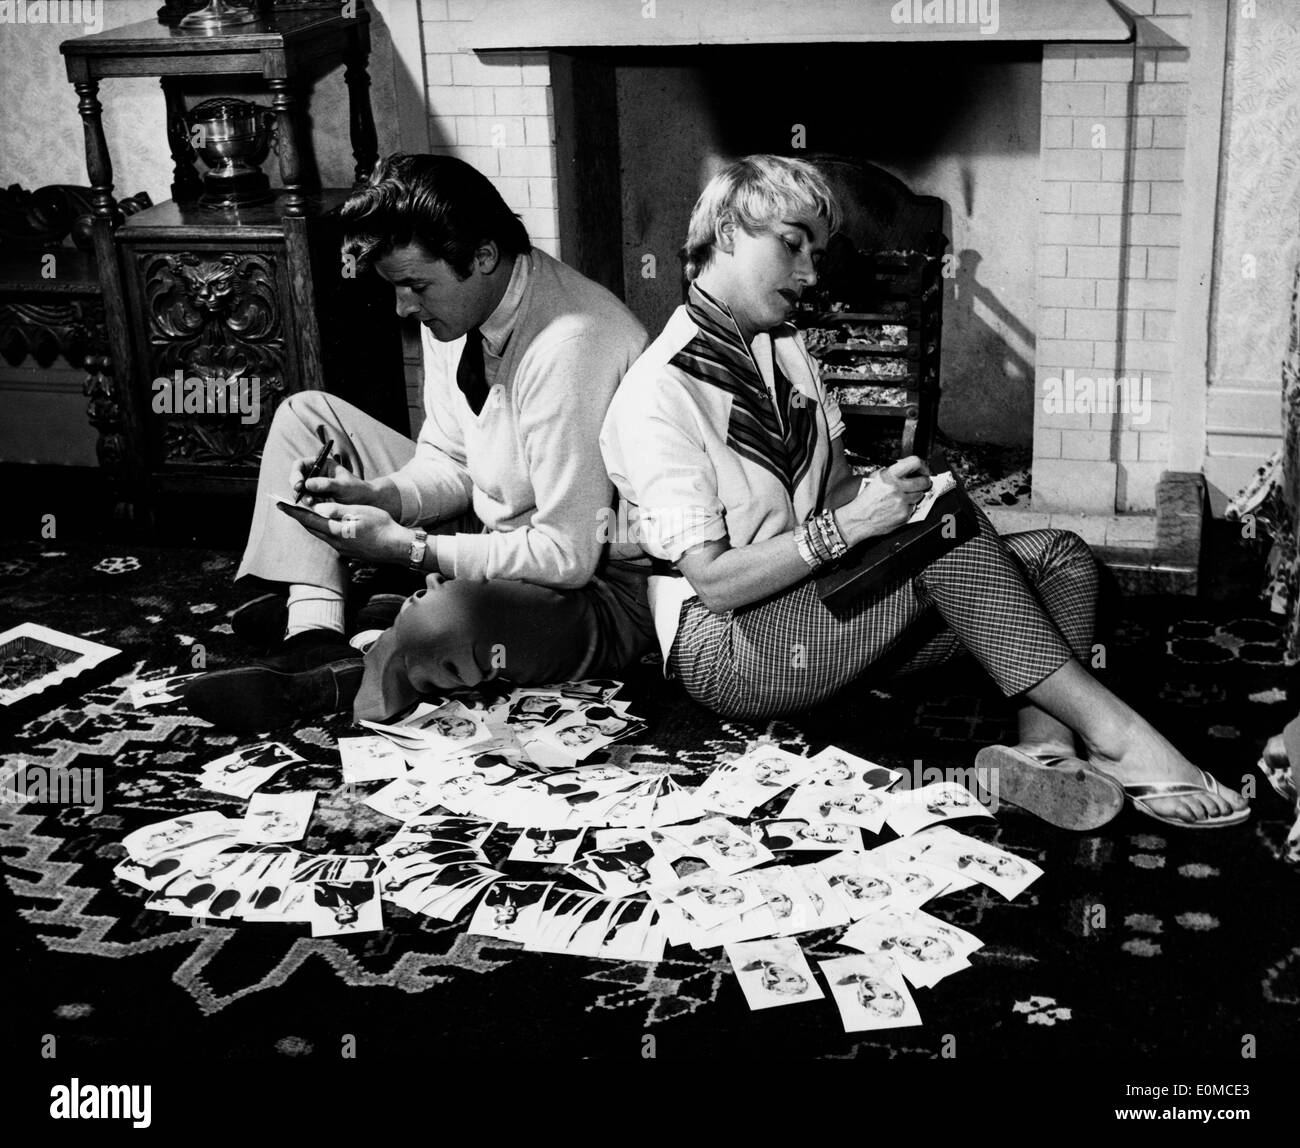 Actor Roger Moore and his wife Dorothy Squires surrounded by photographs - Stock Image